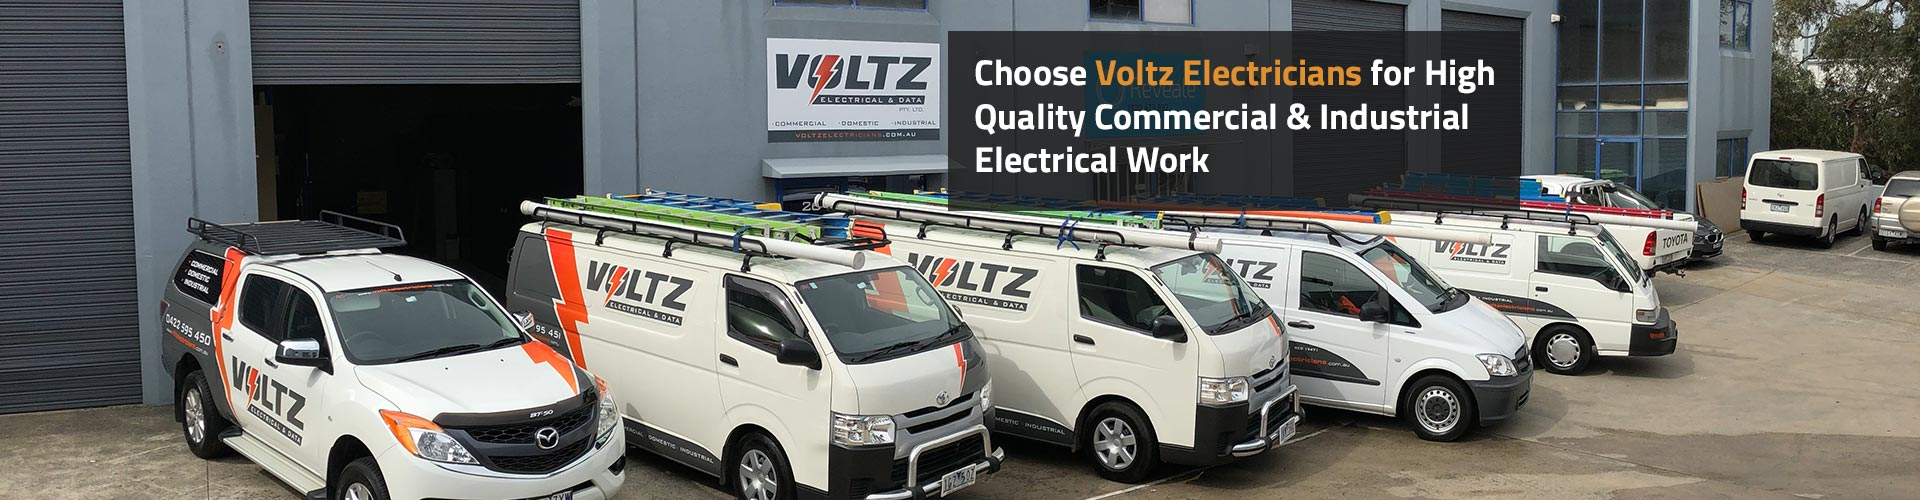 Choose Voltz Electricians for High Quality Commercial & Industrial Electrical Work